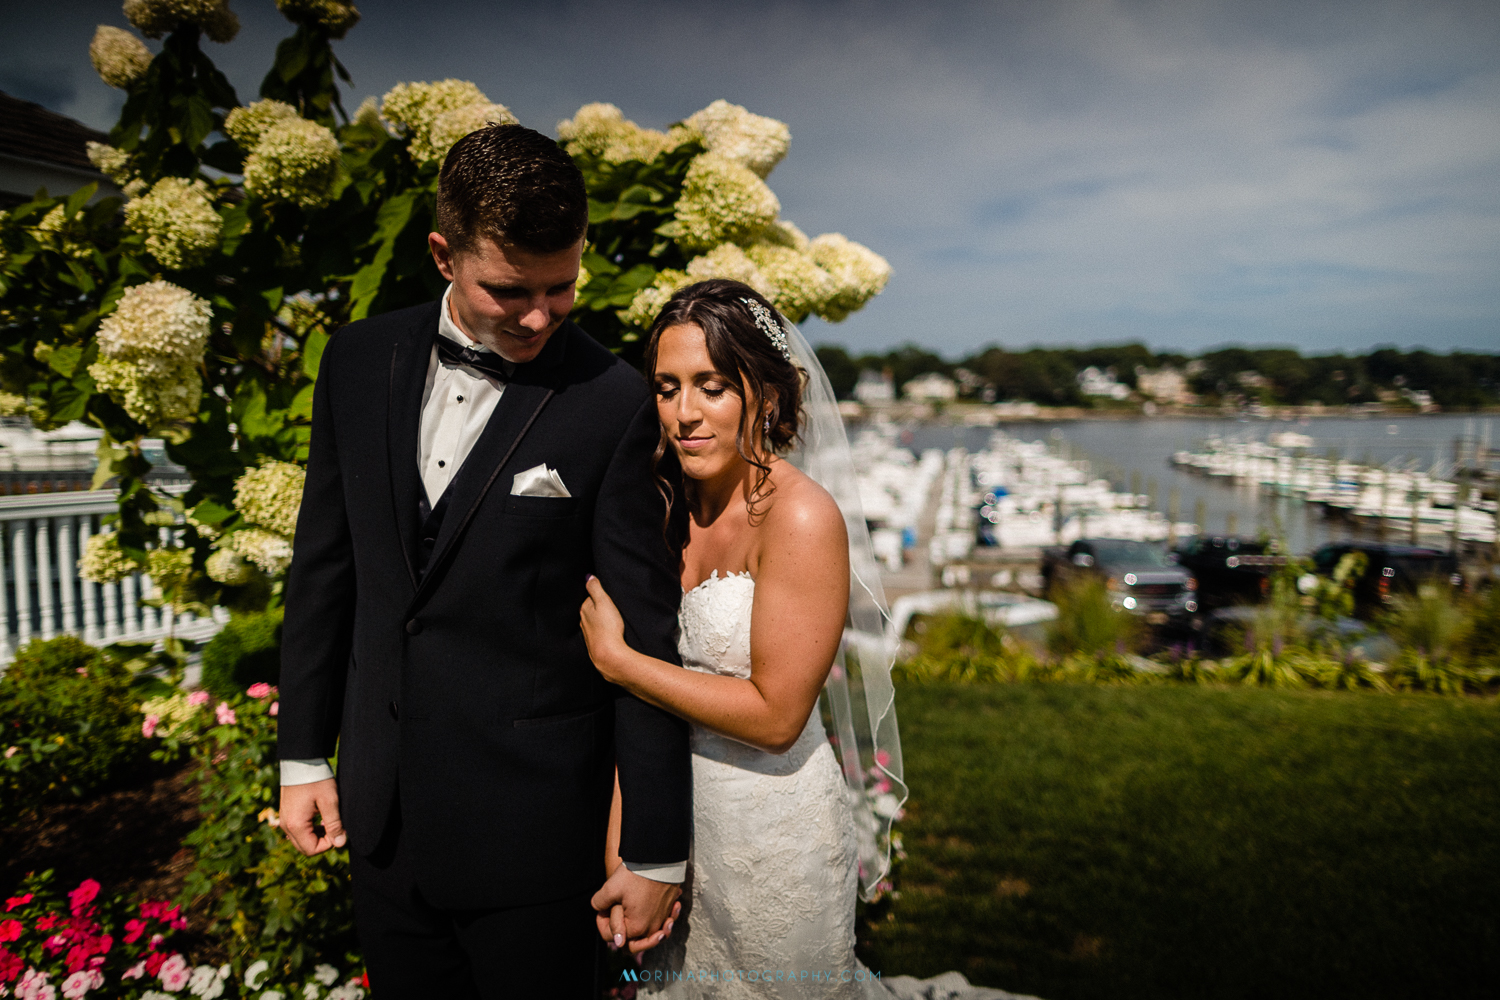 Amanda & Austin wedding at Crystal Point Yacht Club 40.jpg